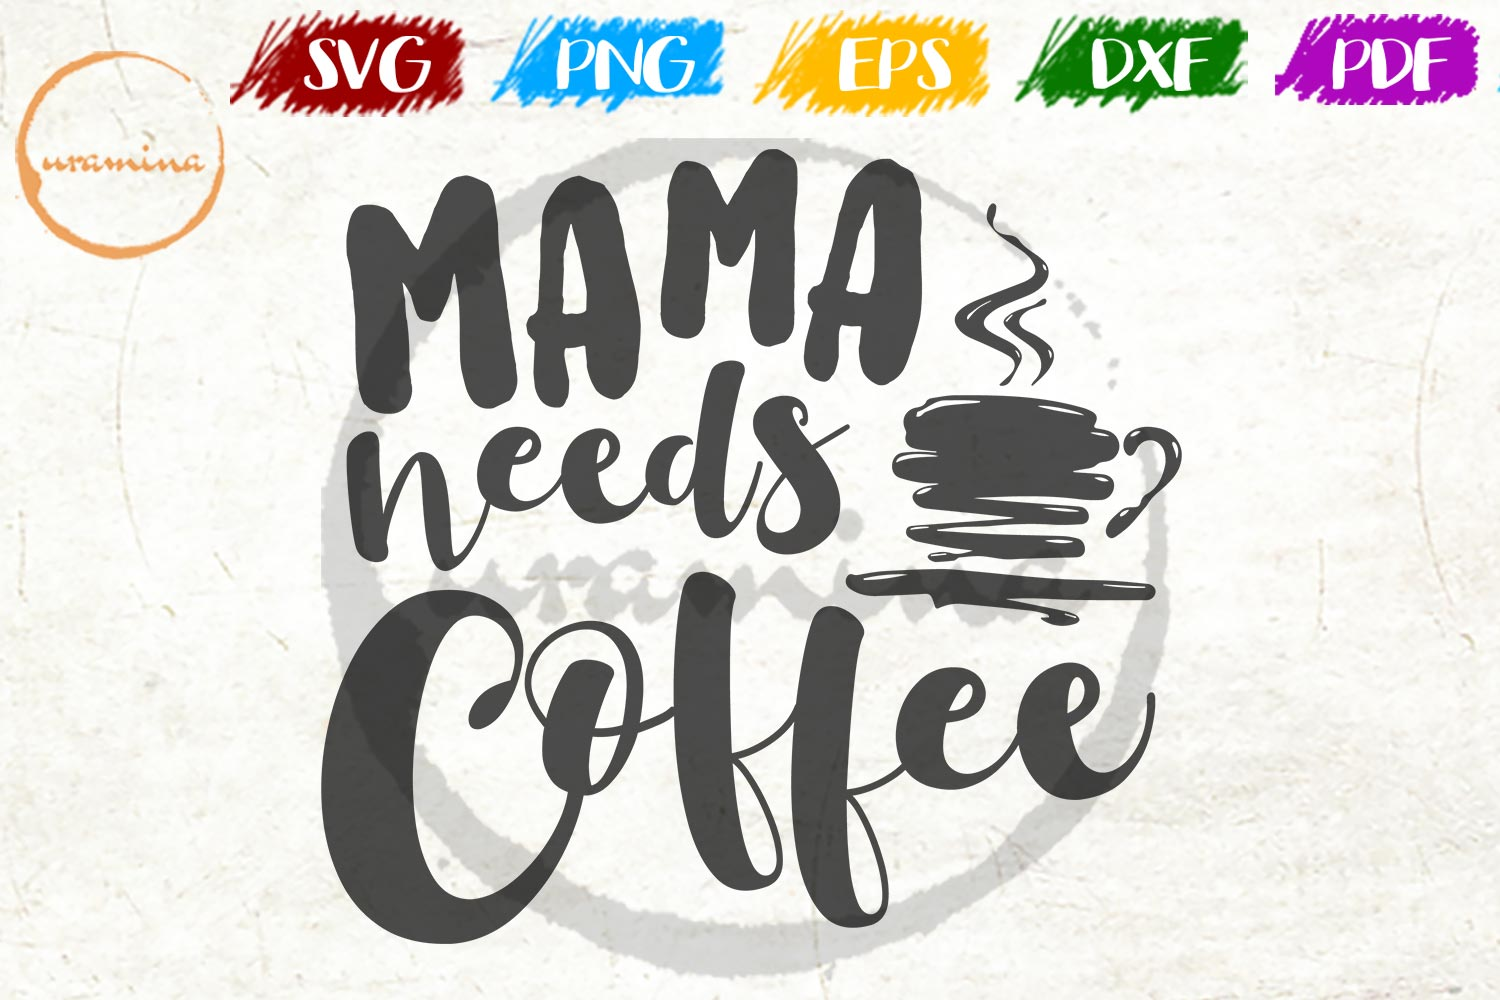 Download Free Mama Needs Coffee Graphic By Uramina Creative Fabrica for Cricut Explore, Silhouette and other cutting machines.